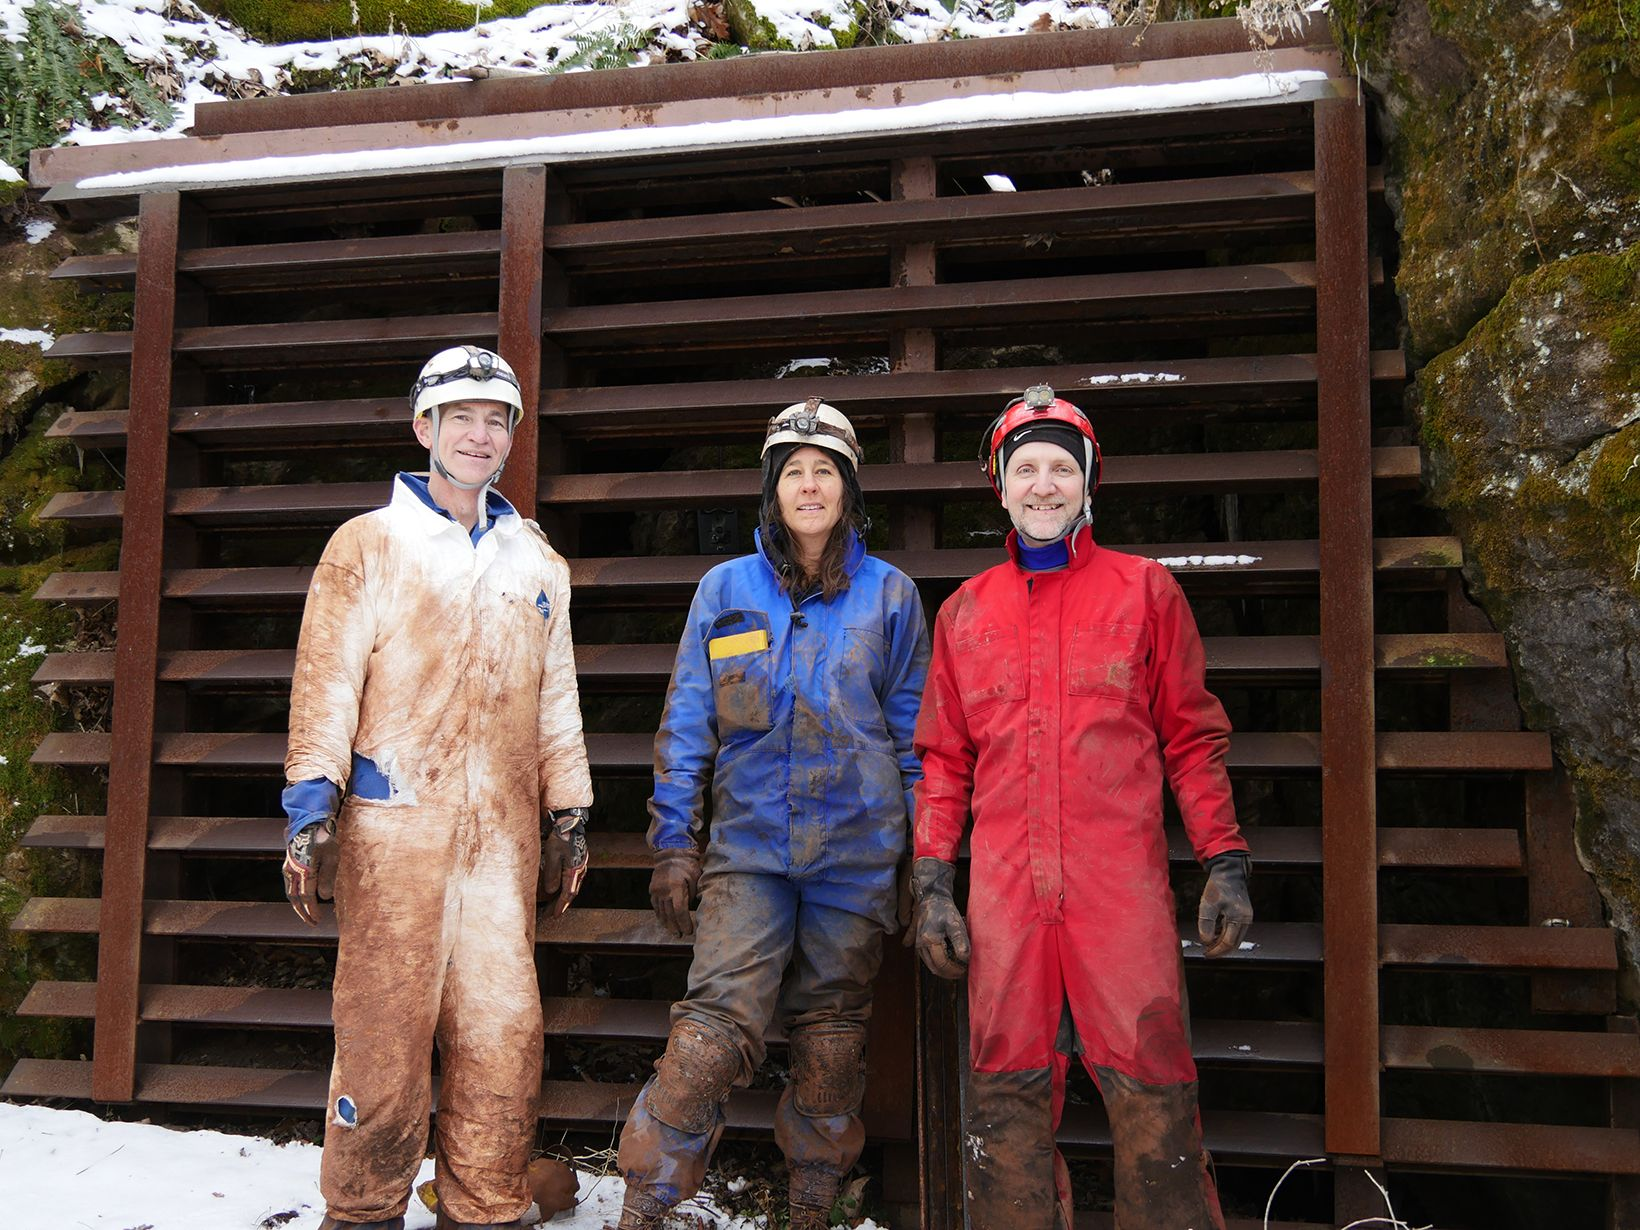 Three people stand together in front of a metal barrier at the opening to a cave. They wear coveralls covered in mud and ripped in places where they had to crawl through narrow cave openings.